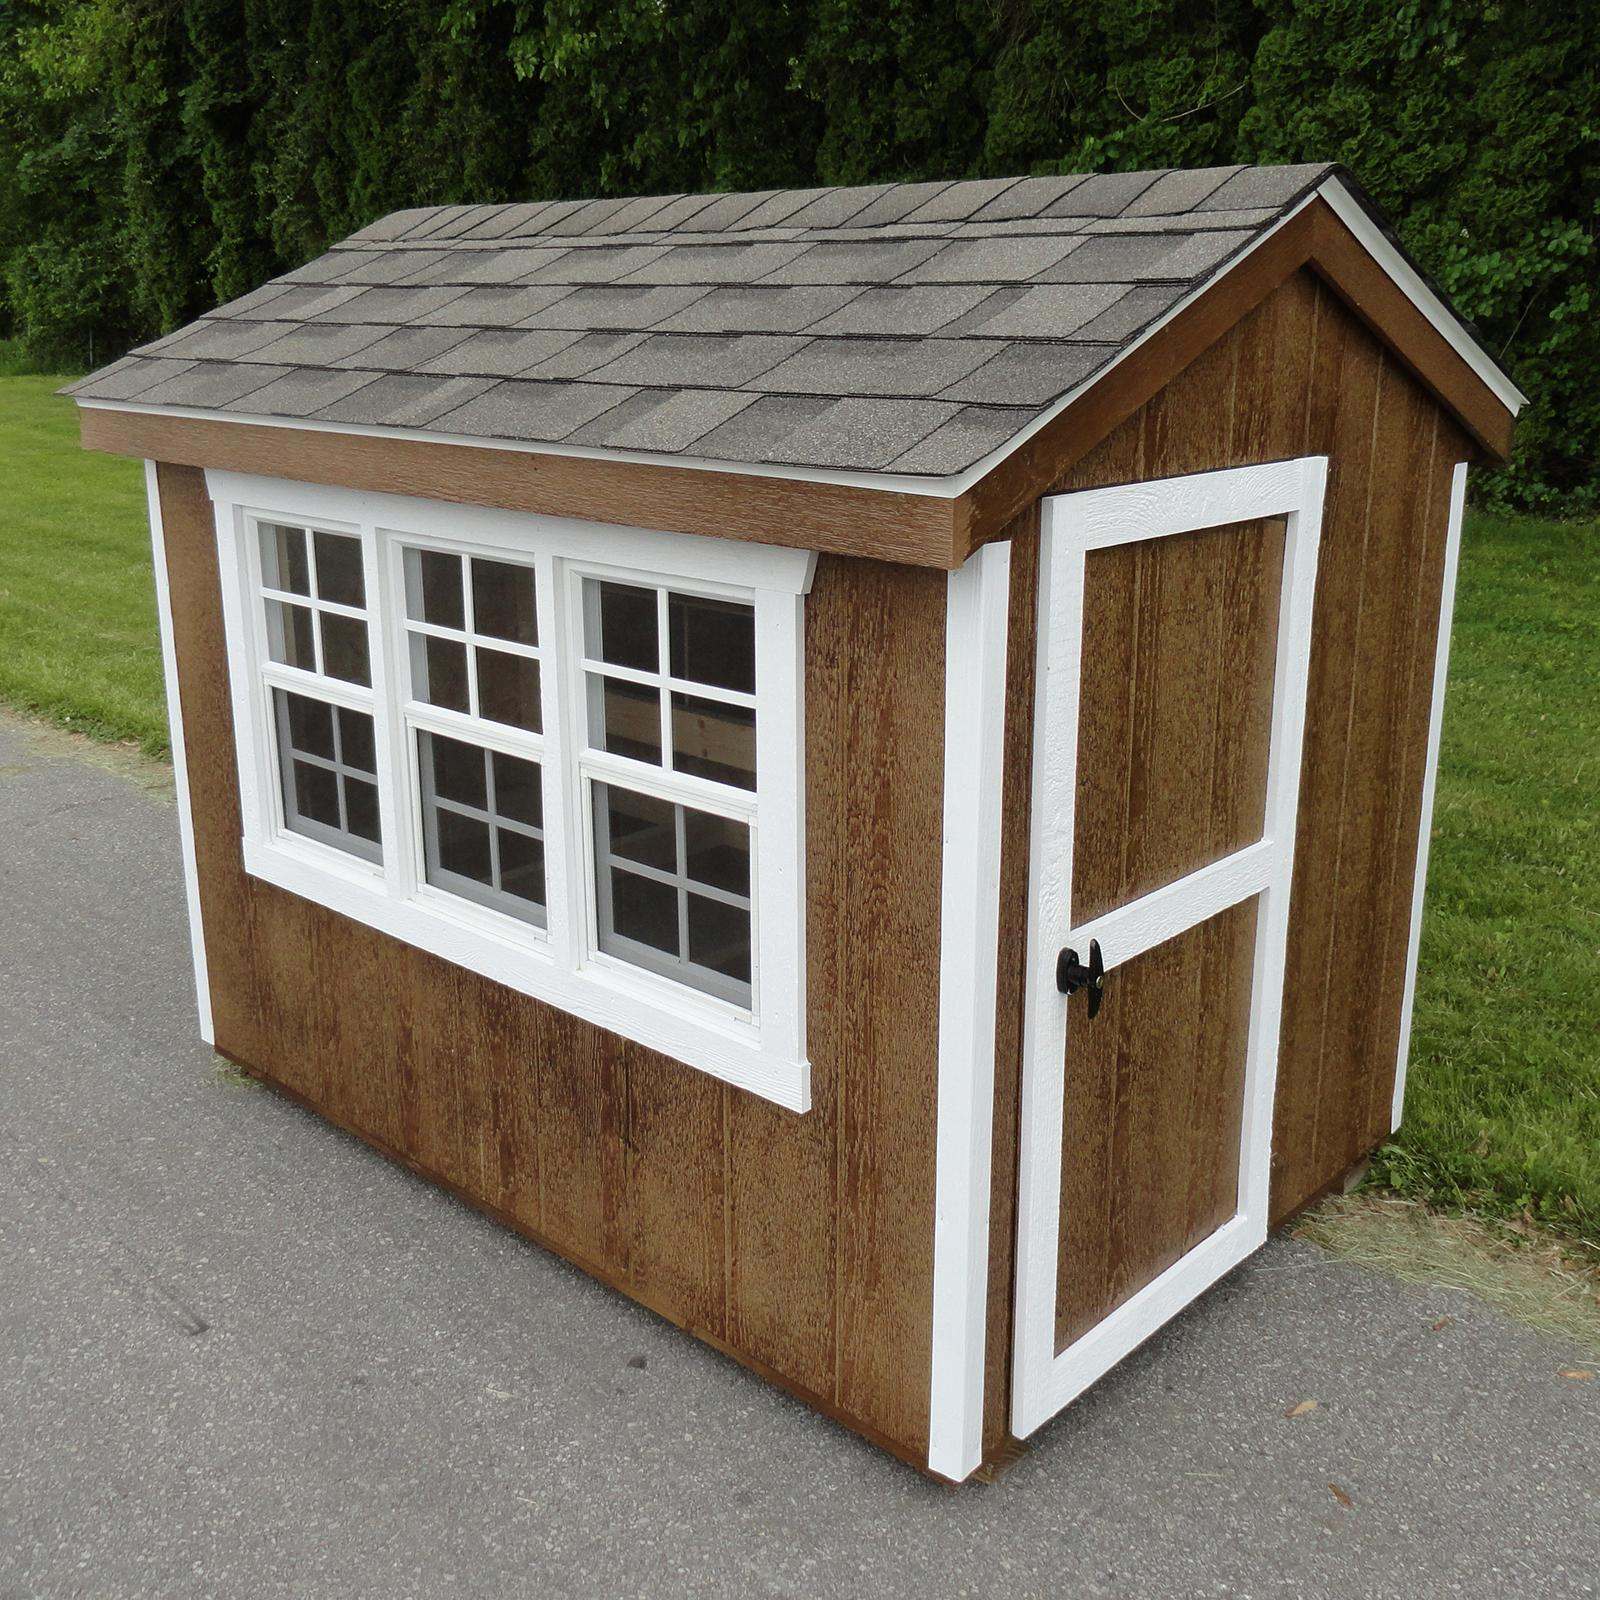 A & L Furniture Henny Penny Chicken Coop Charcoal Brown Dawn Gray - 9300-BROWN/GRAY